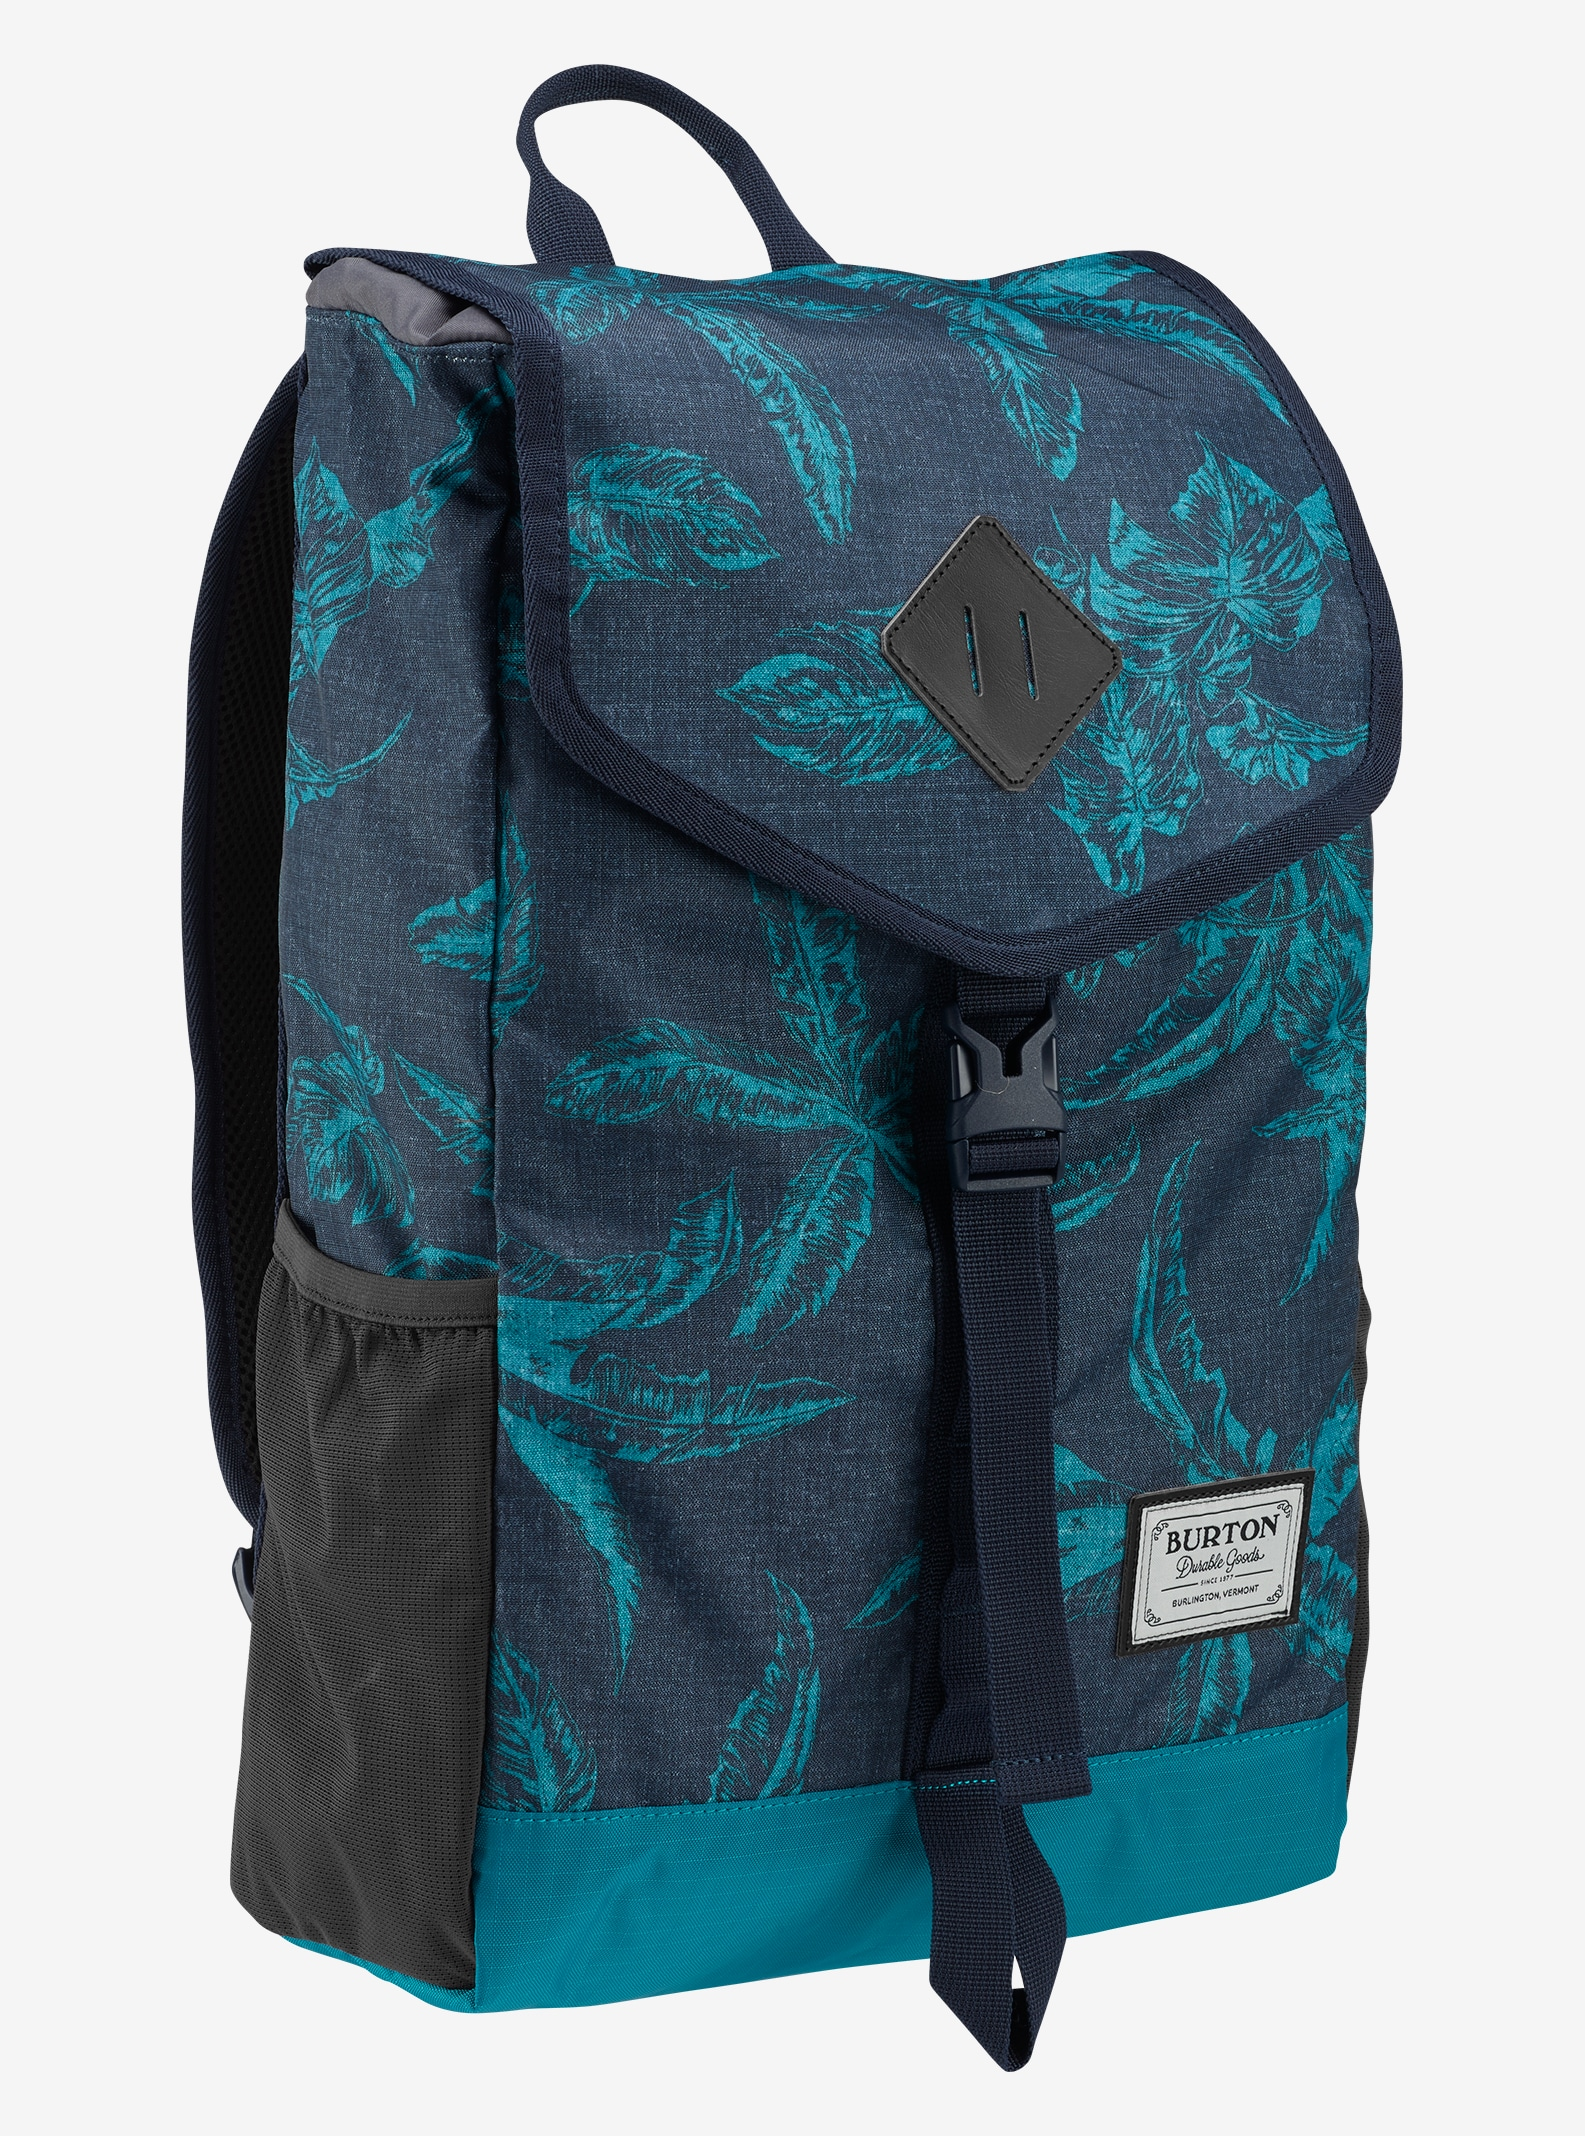 Burton Westfall Backpack shown in Tropical Print